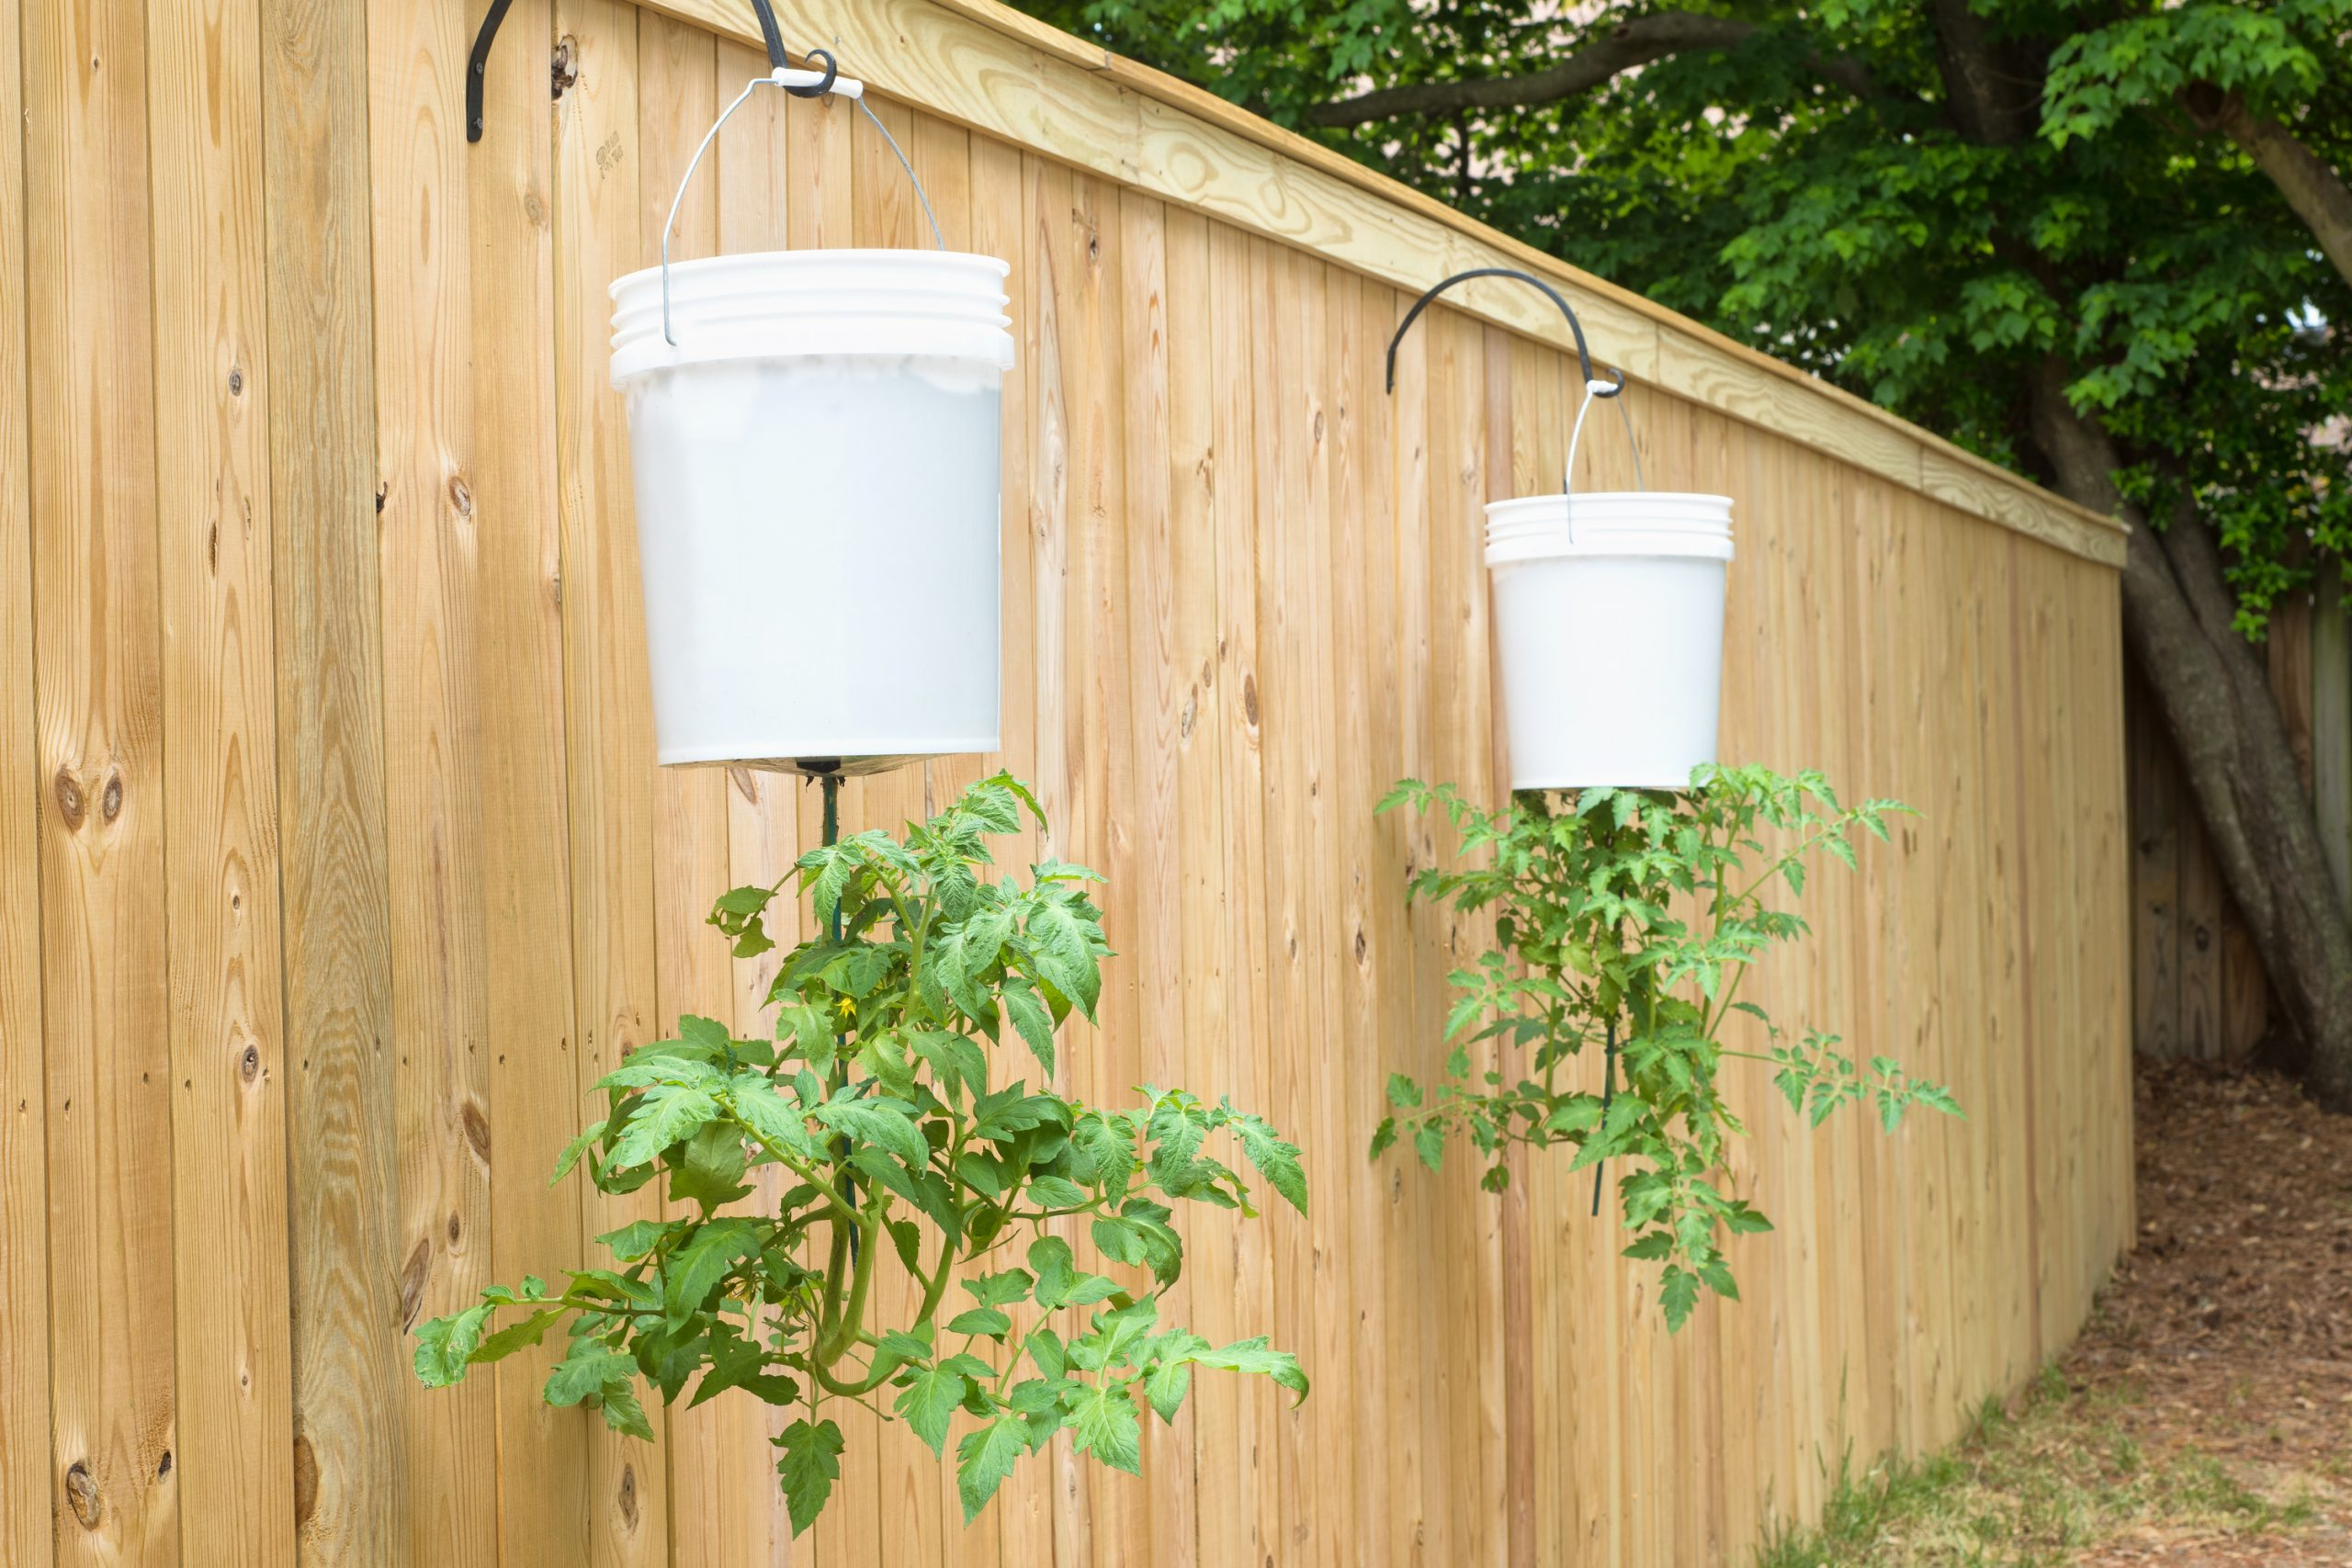 If you are short on garden space, or just want to add a little greenery somewhere else, try to grow your own upside down tomatoes. Just make sure you are properly watering them.